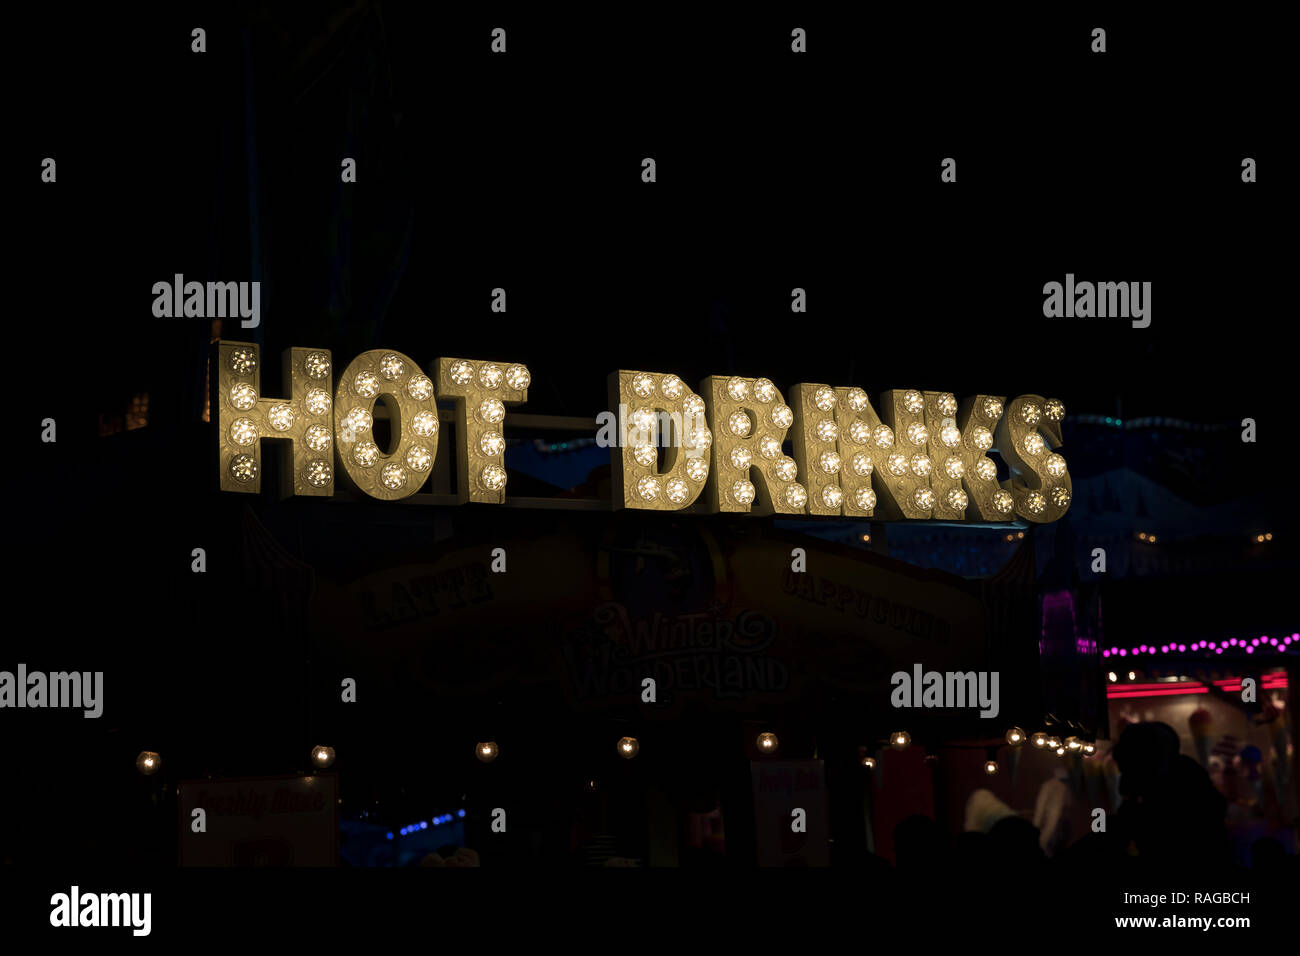 London, United Kingdom - December 30th 2018: Hot Drinks sign during the night time at Winter Wonderland / Hyde Park - Stock Image